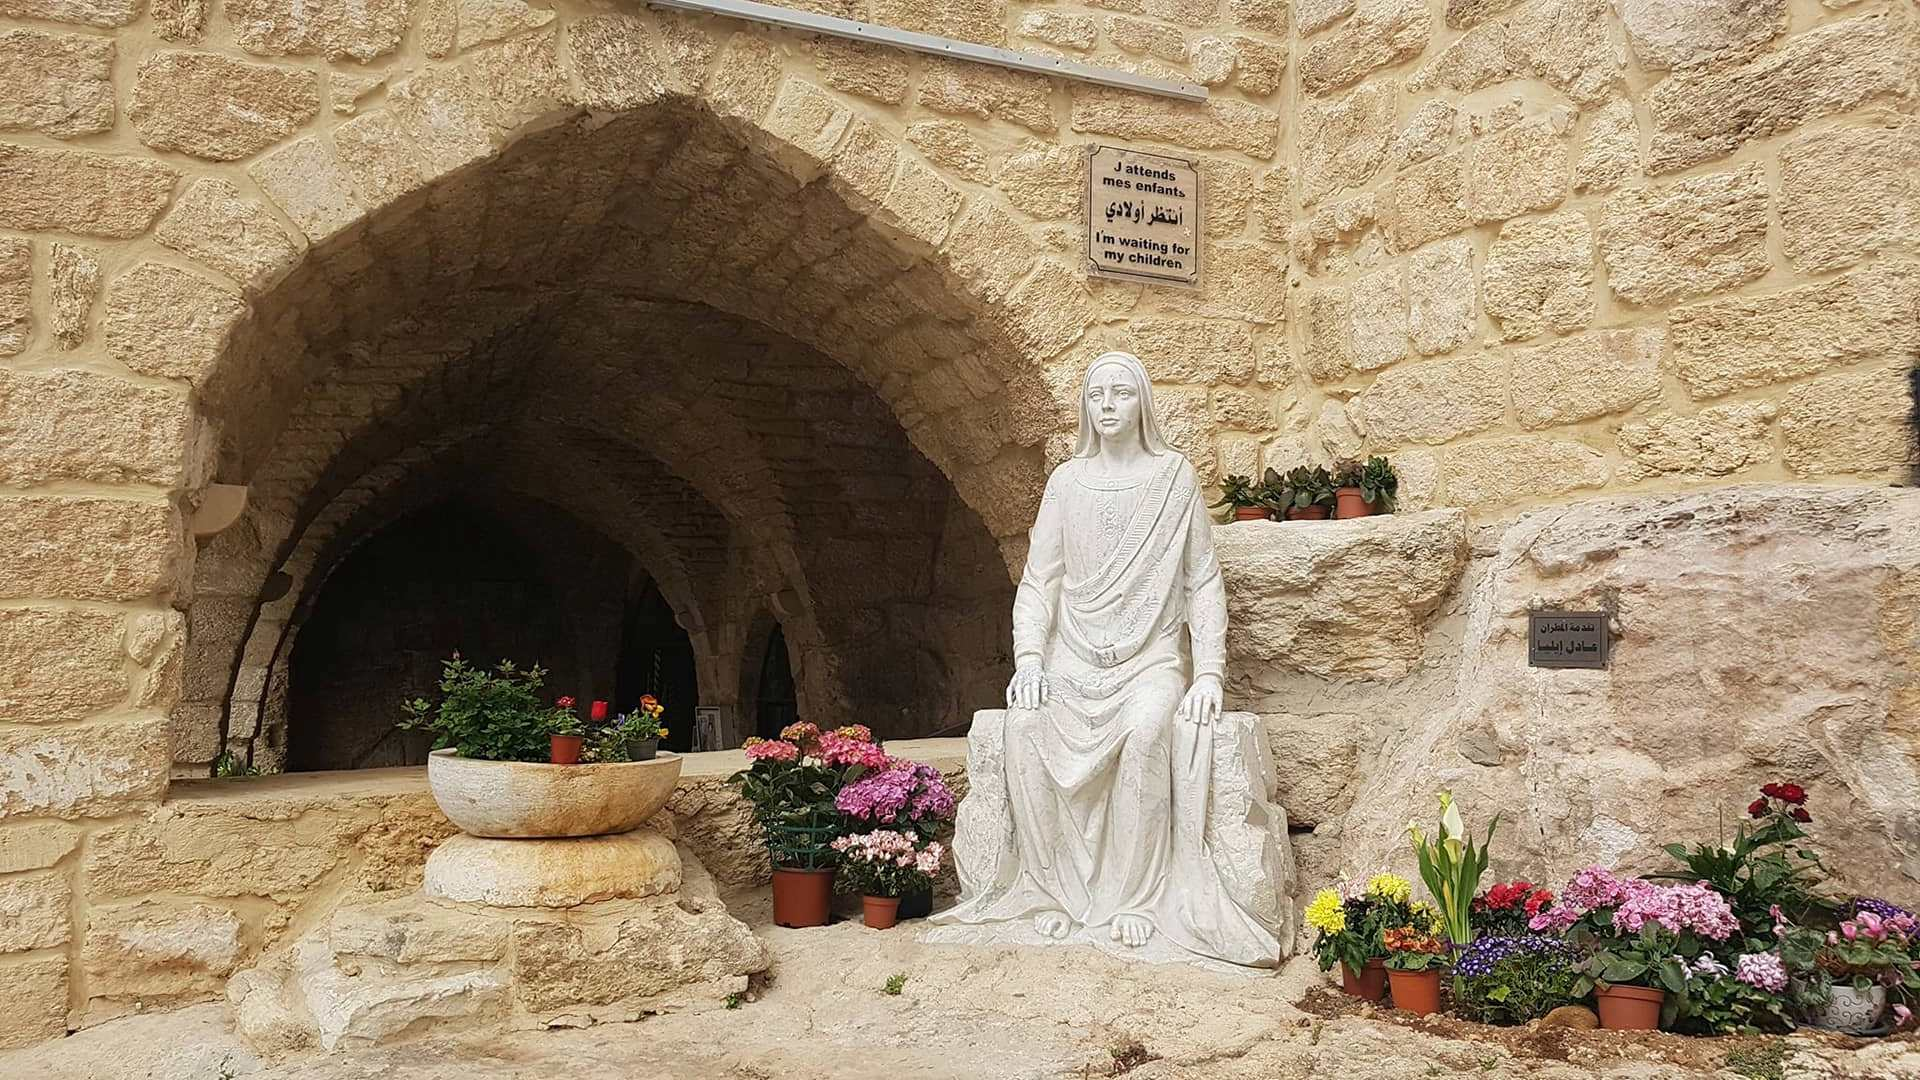 Tour the Our Lady of Awaiting shrine